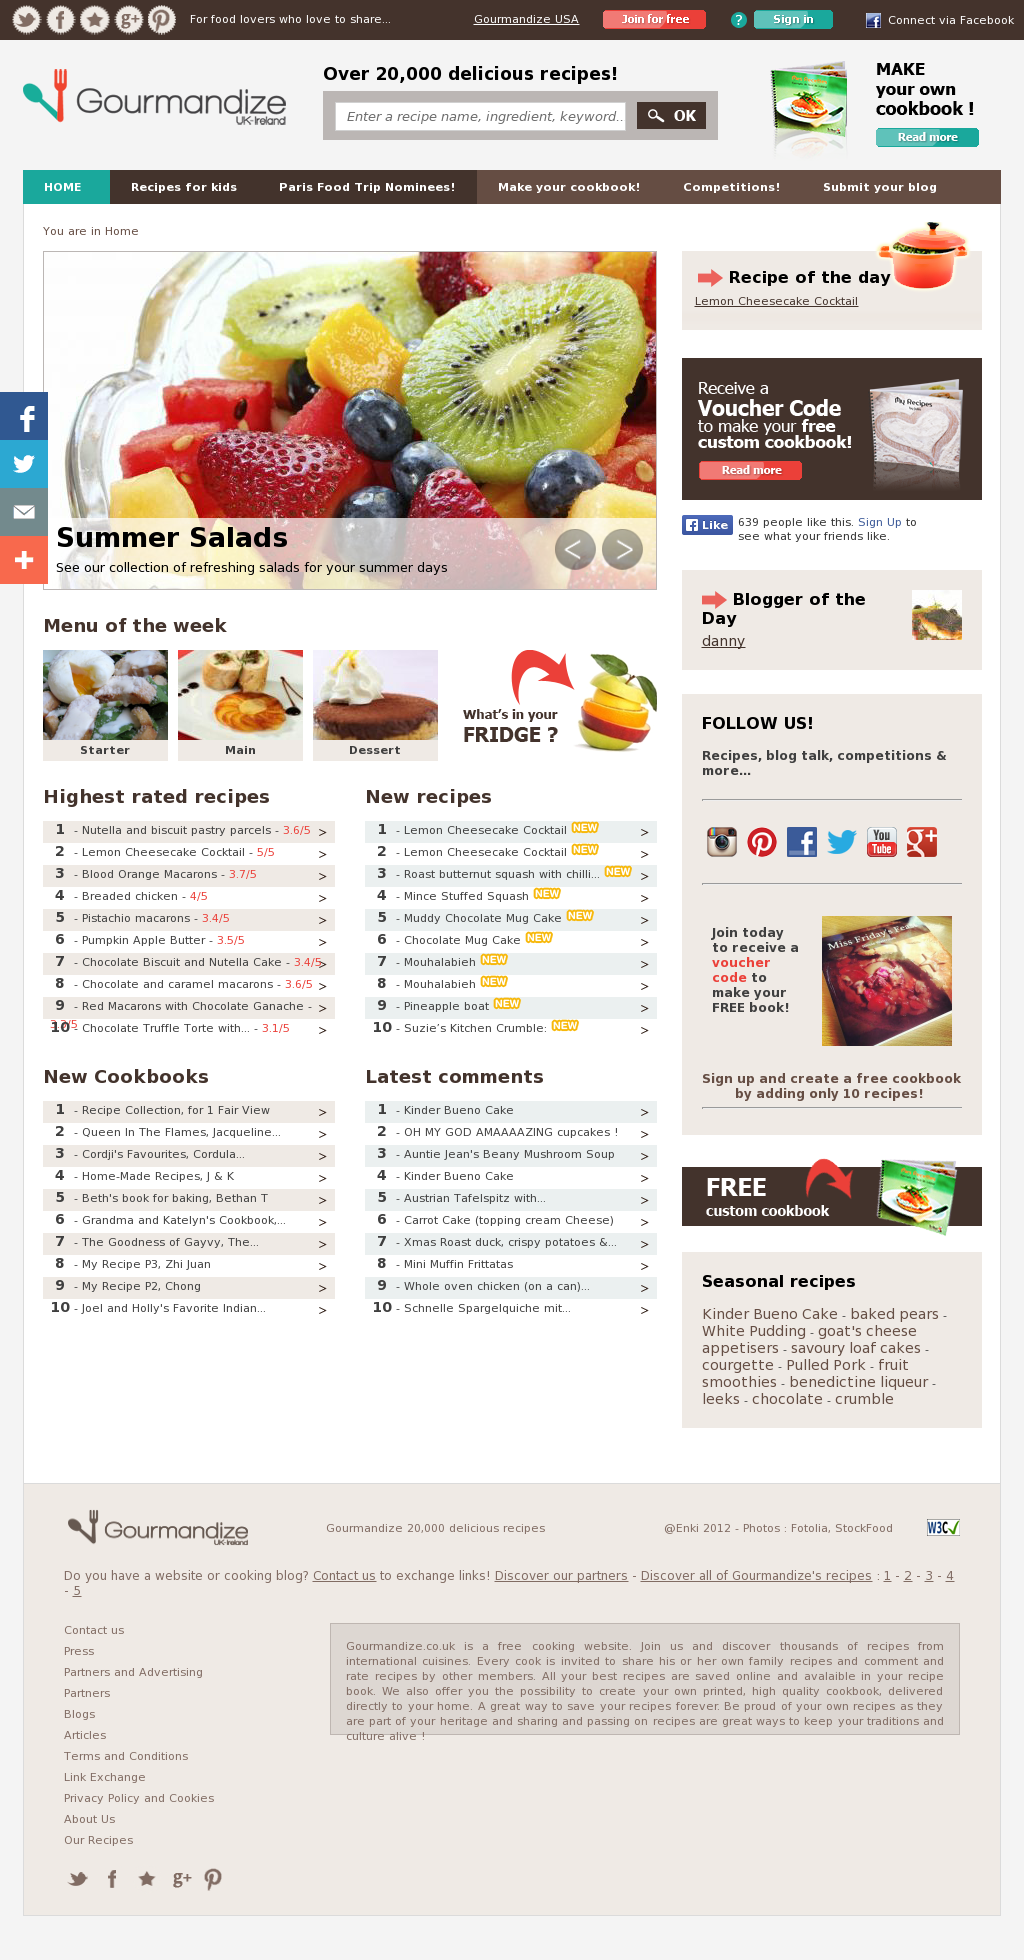 Gourmandize Competitors, Revenue and Employees - Owler